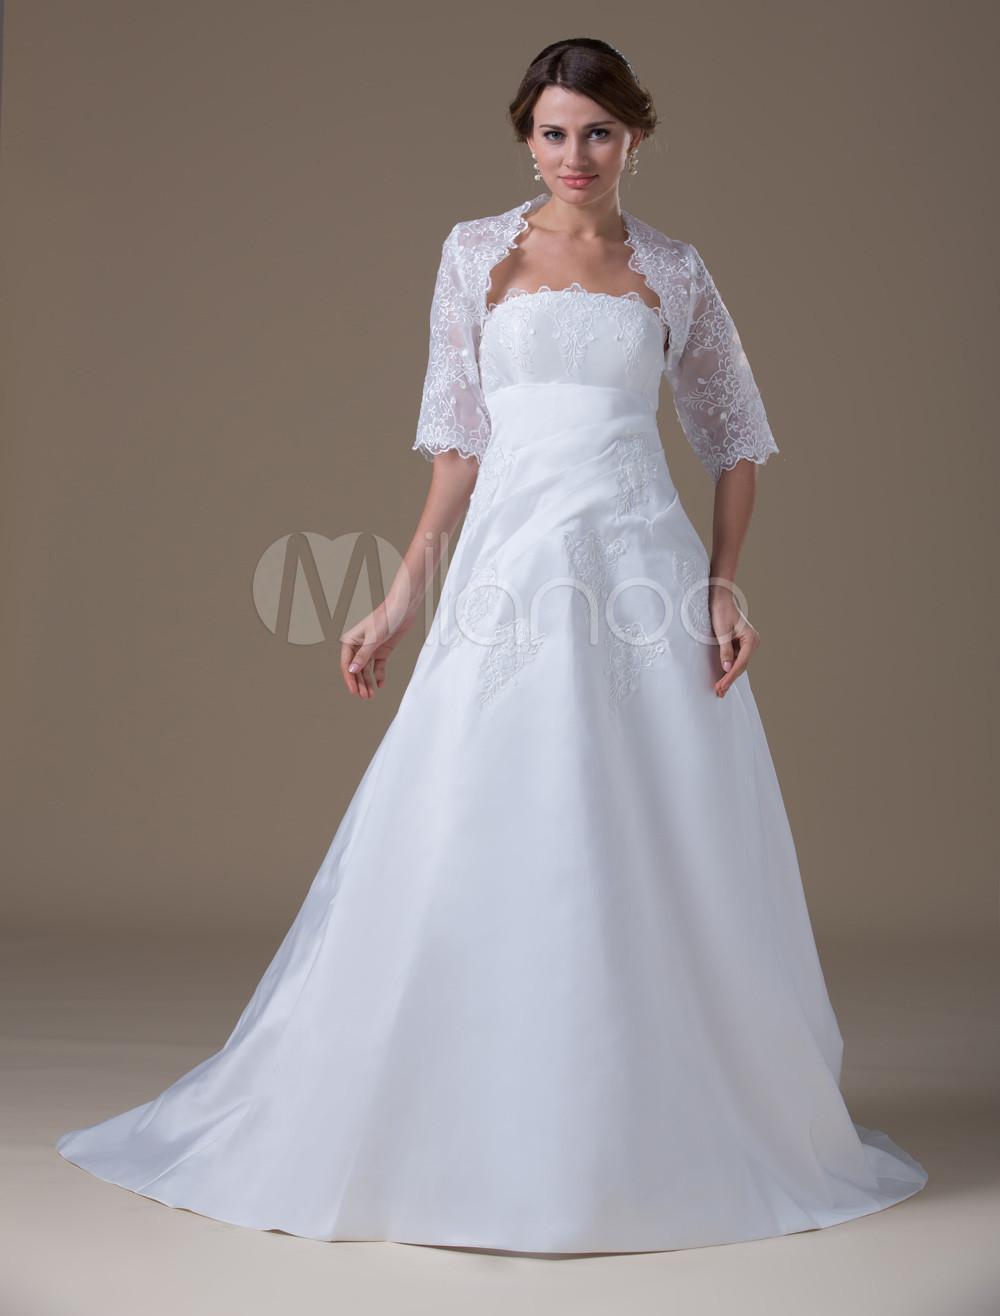 White wedding dresses taffeta strapless bridal gown lace for Strapless taffeta wedding dress